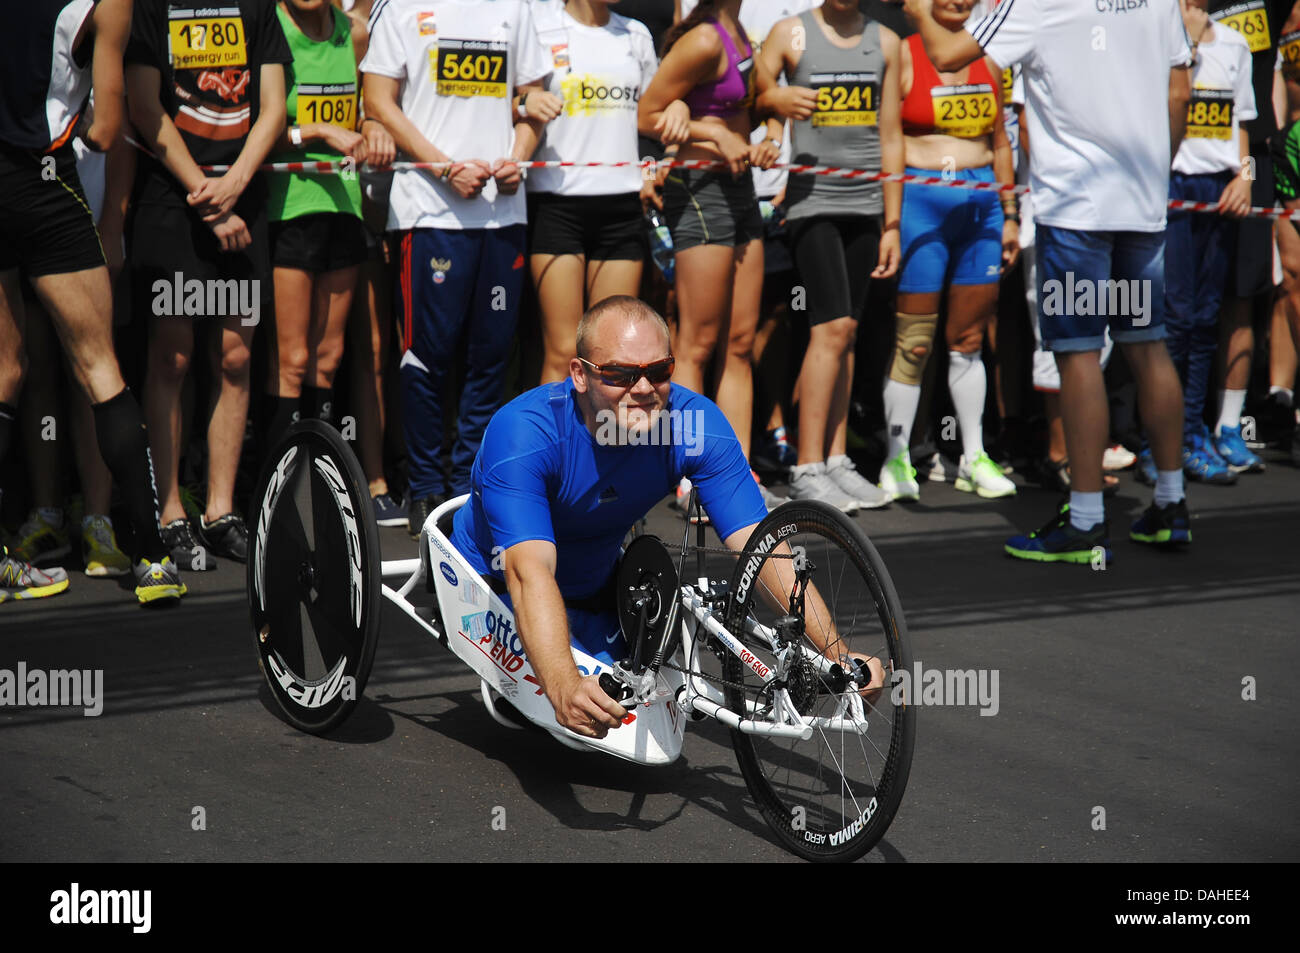 Moscow, Russia. 13th July, 2013. Unidentified paralympic sportsman on city event Sport of Moscow passing in Luzhniki - Stock Image